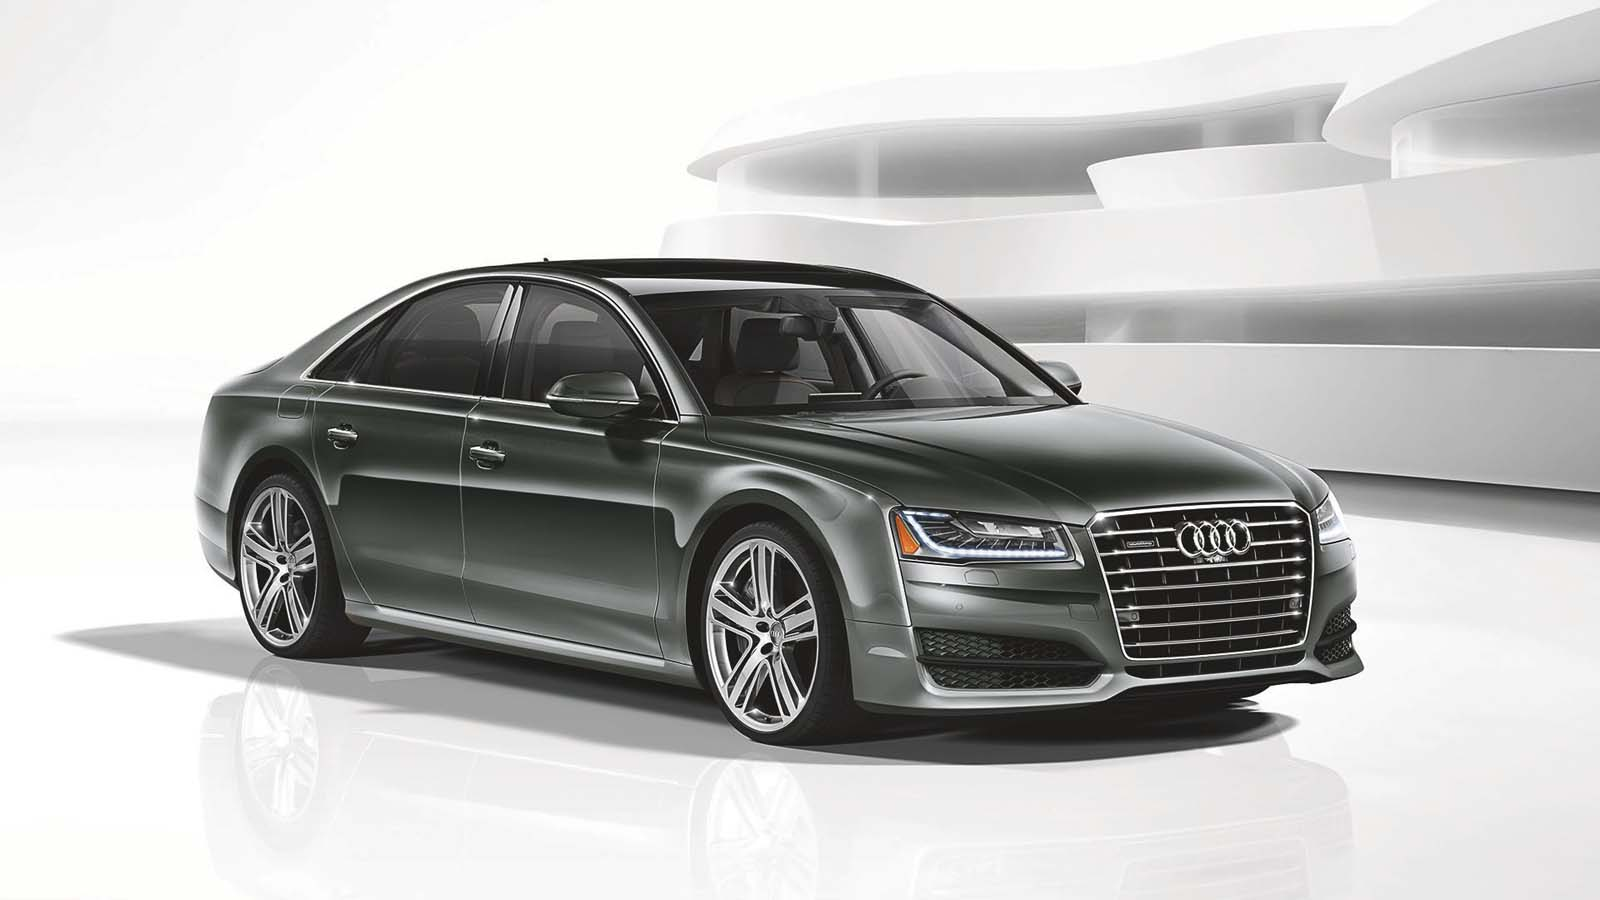 2016 audi a8 4 0t sport gets power bump tweaked styling. Black Bedroom Furniture Sets. Home Design Ideas